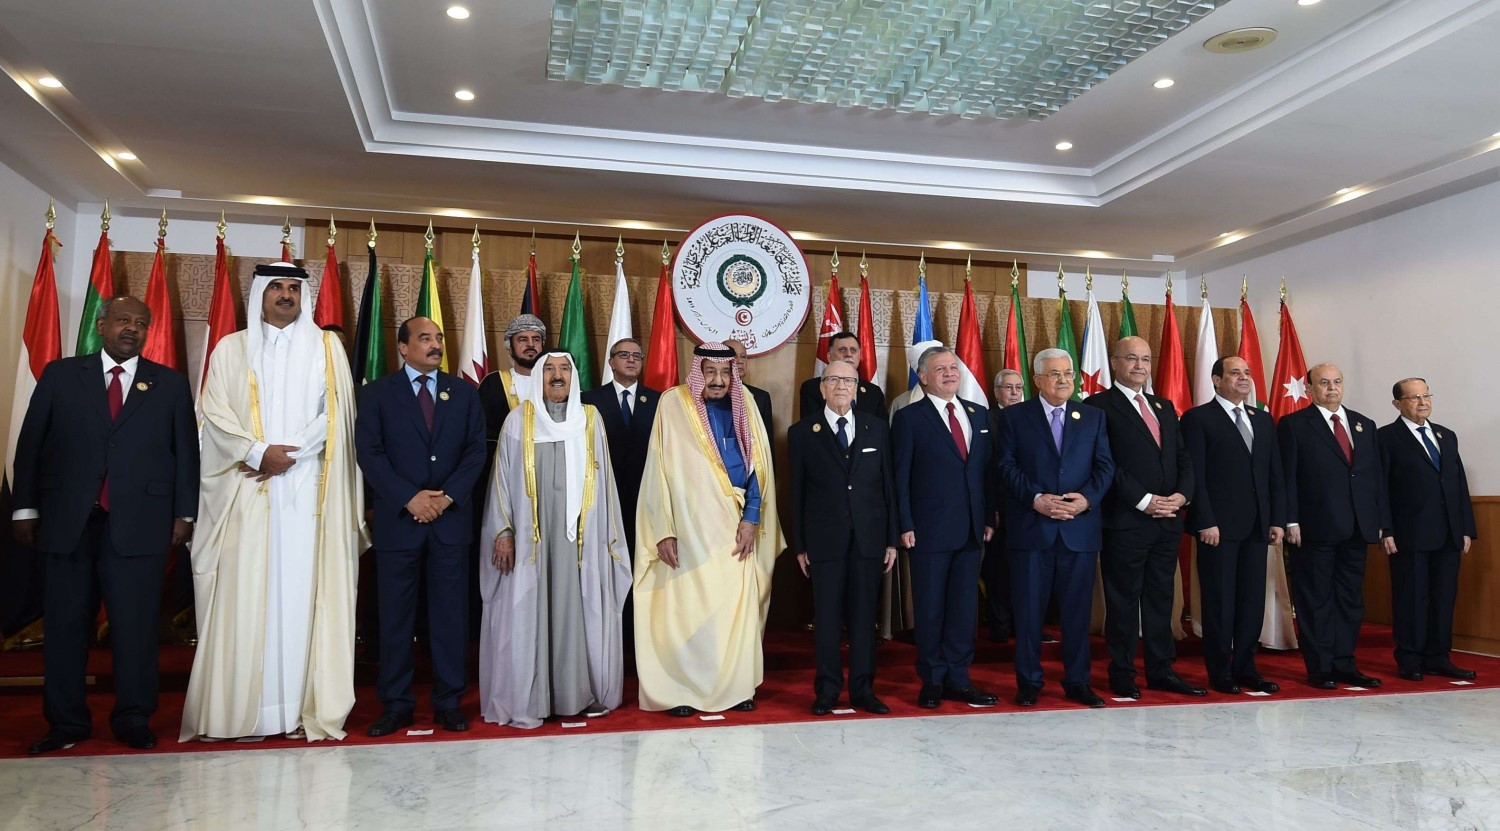 Arab leaders pose for a photograph during the 30th Arab League summit in the Tunisian capital Tunis on March 31, 2019. (AFP)